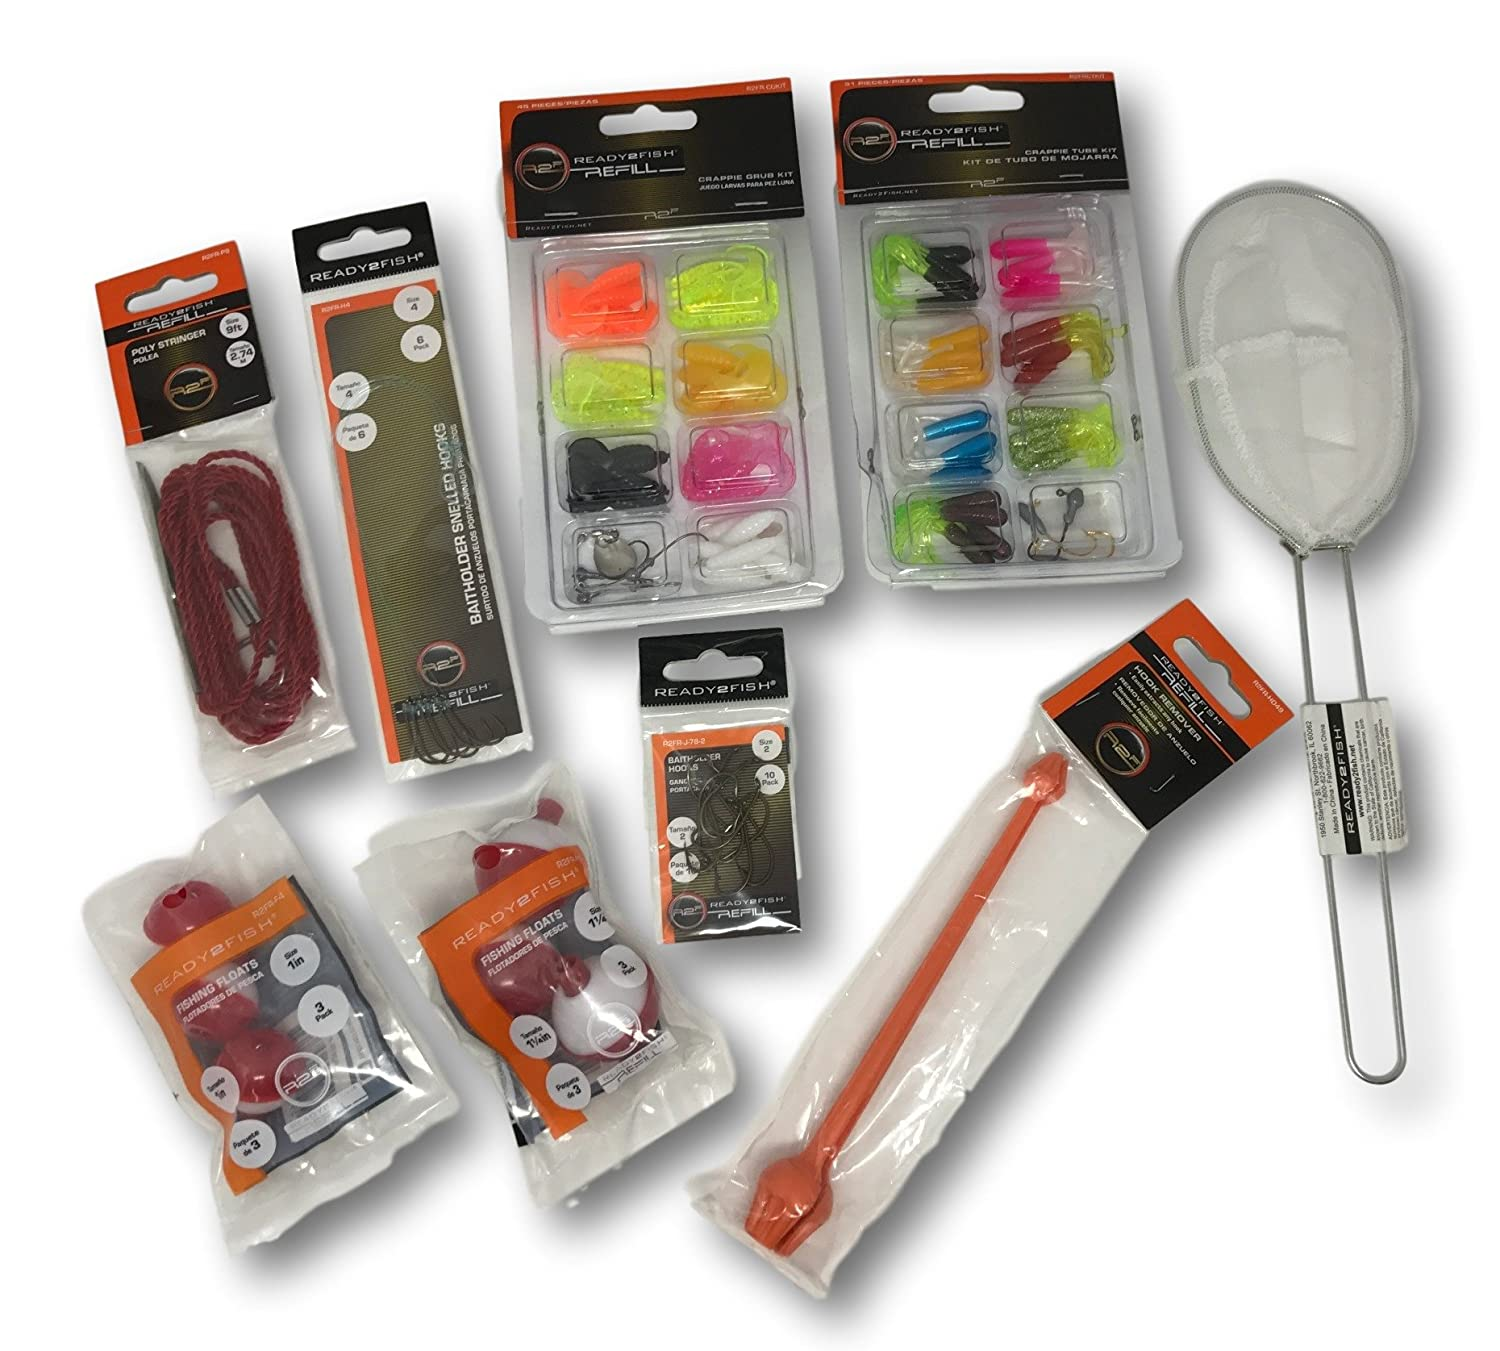 Amazon.com : Fishing Crappie Grub and Tube Kit, Hook Remover, Fishing Floats, Bait Holder Hooks, Snelled Hooks, Minnow Net, and Poly Stringer 110 Piece ...